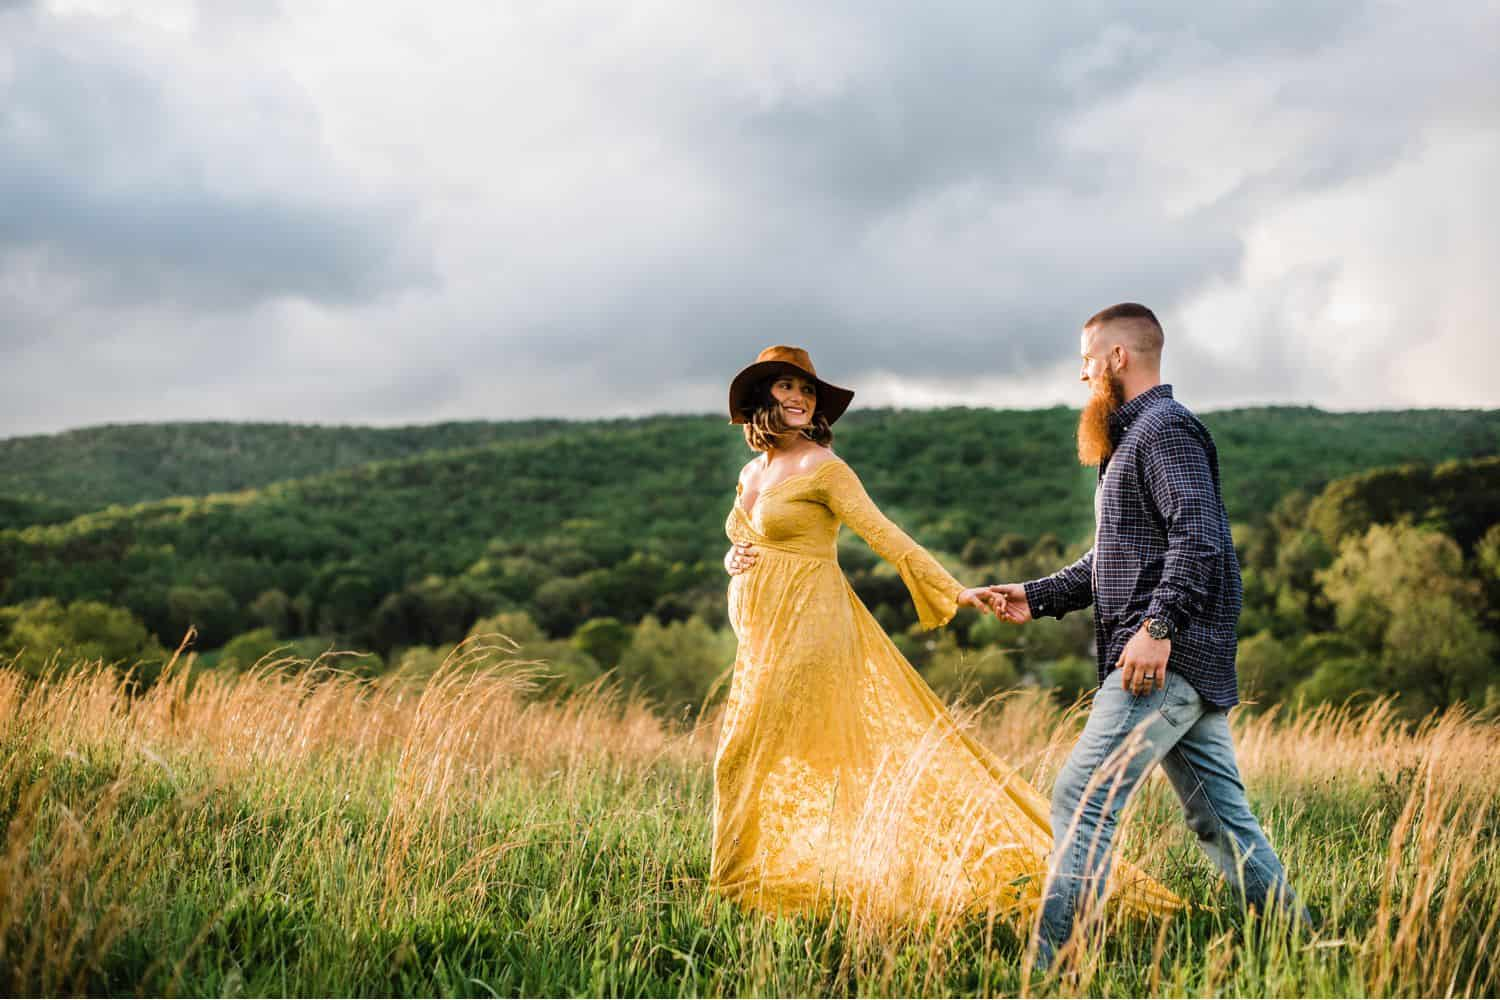 Maternity Poses: pregnant woman in a yellow dress leads a man in a plaid shirt through a field